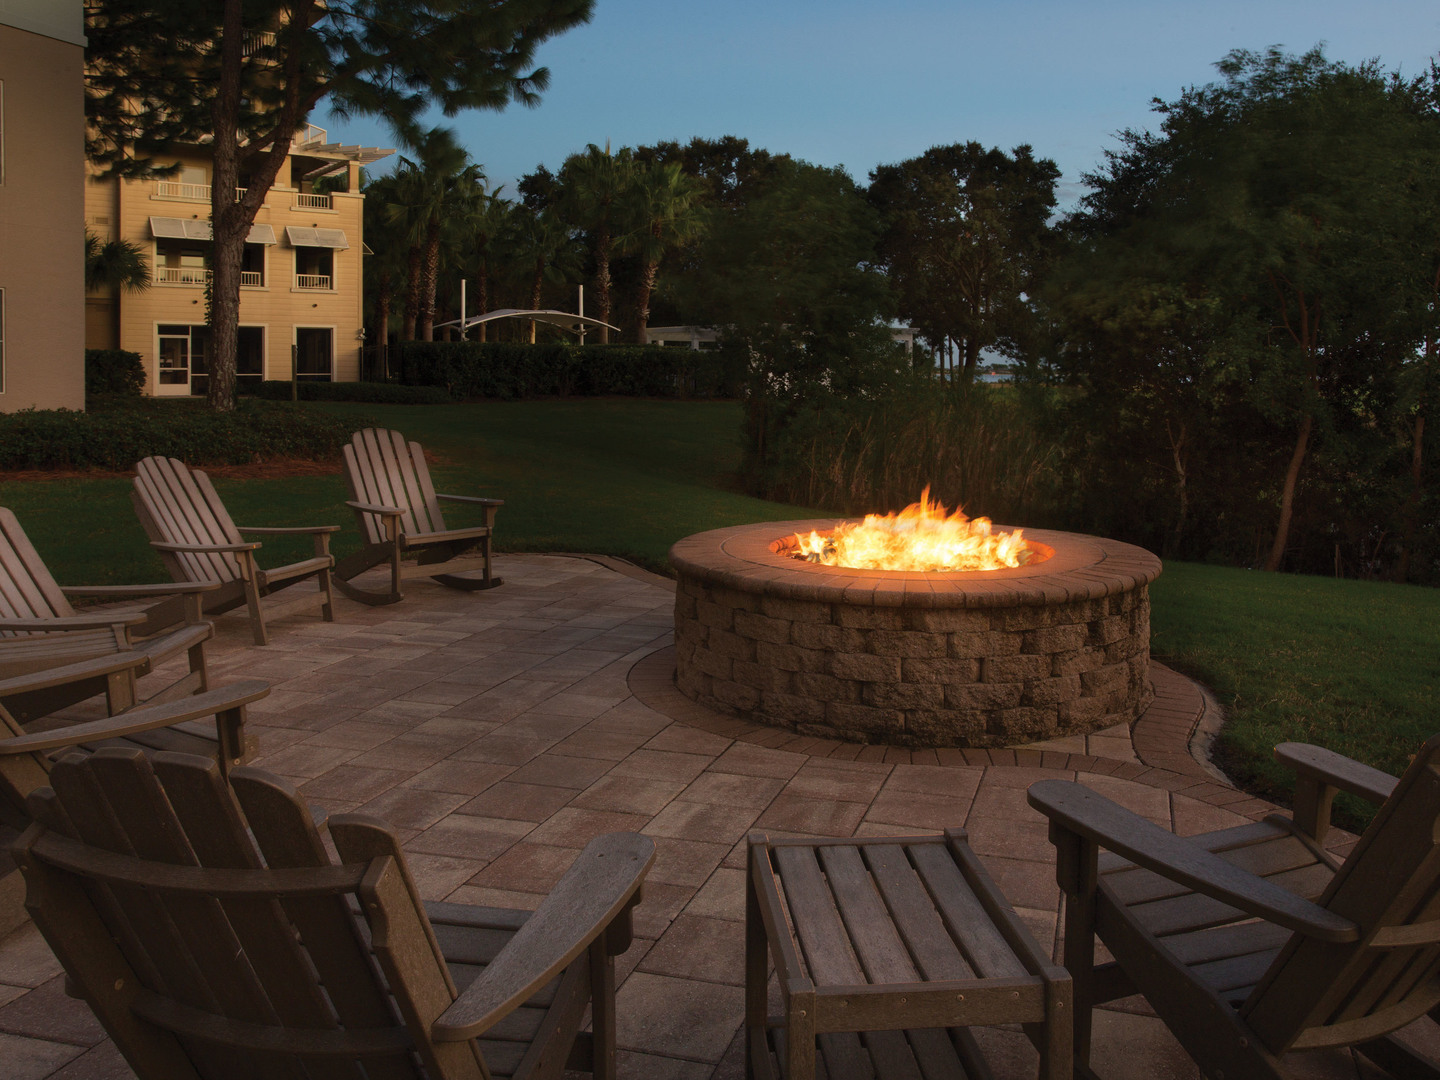 Marriott's Legends Edge at Bay Point Fire Pit. Marriott's Legends Edge at Bay Point is located in Panama City, Florida United States.